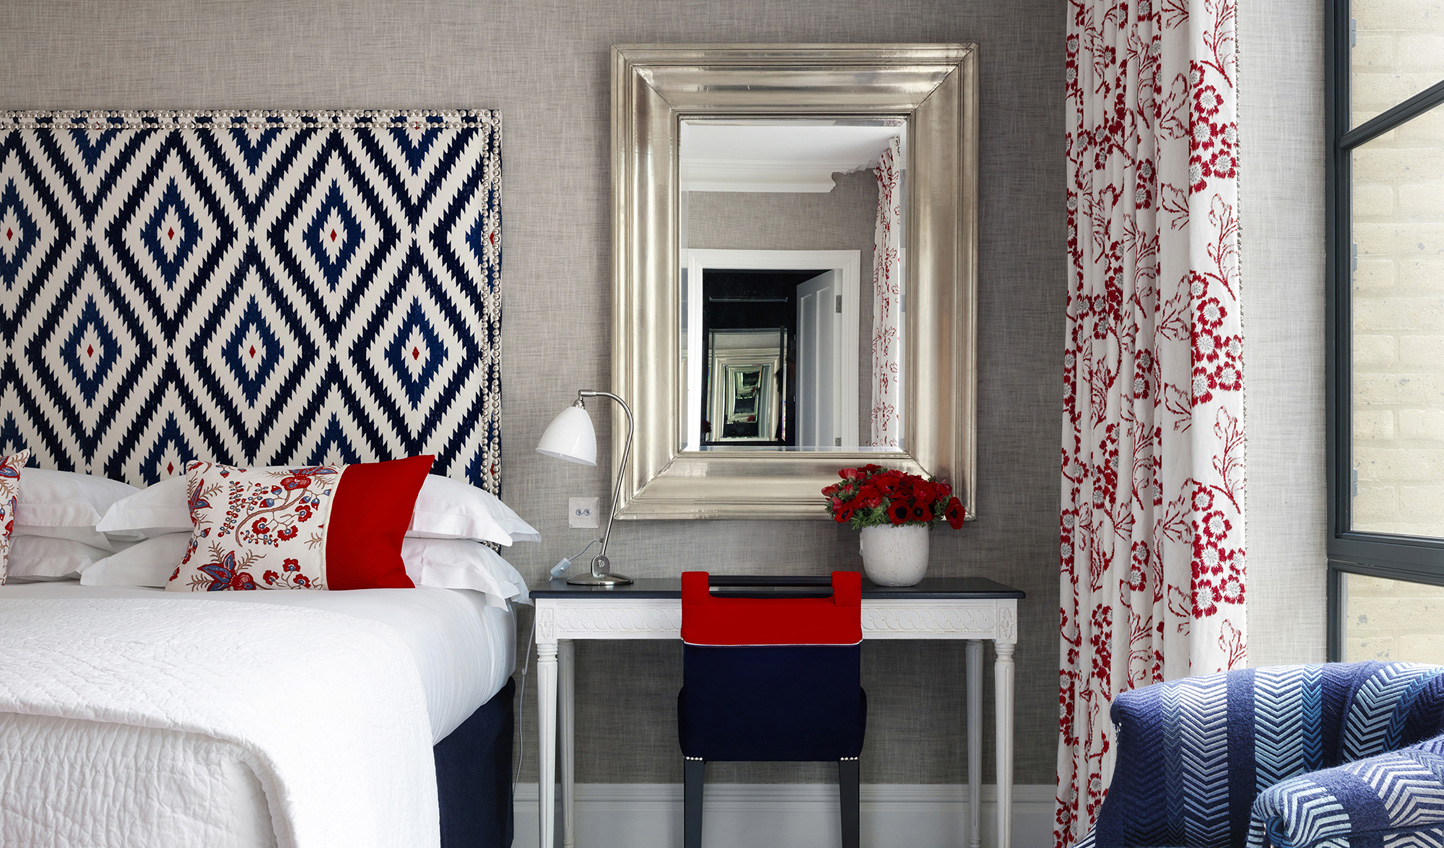 Funky rooms for a fun city lover